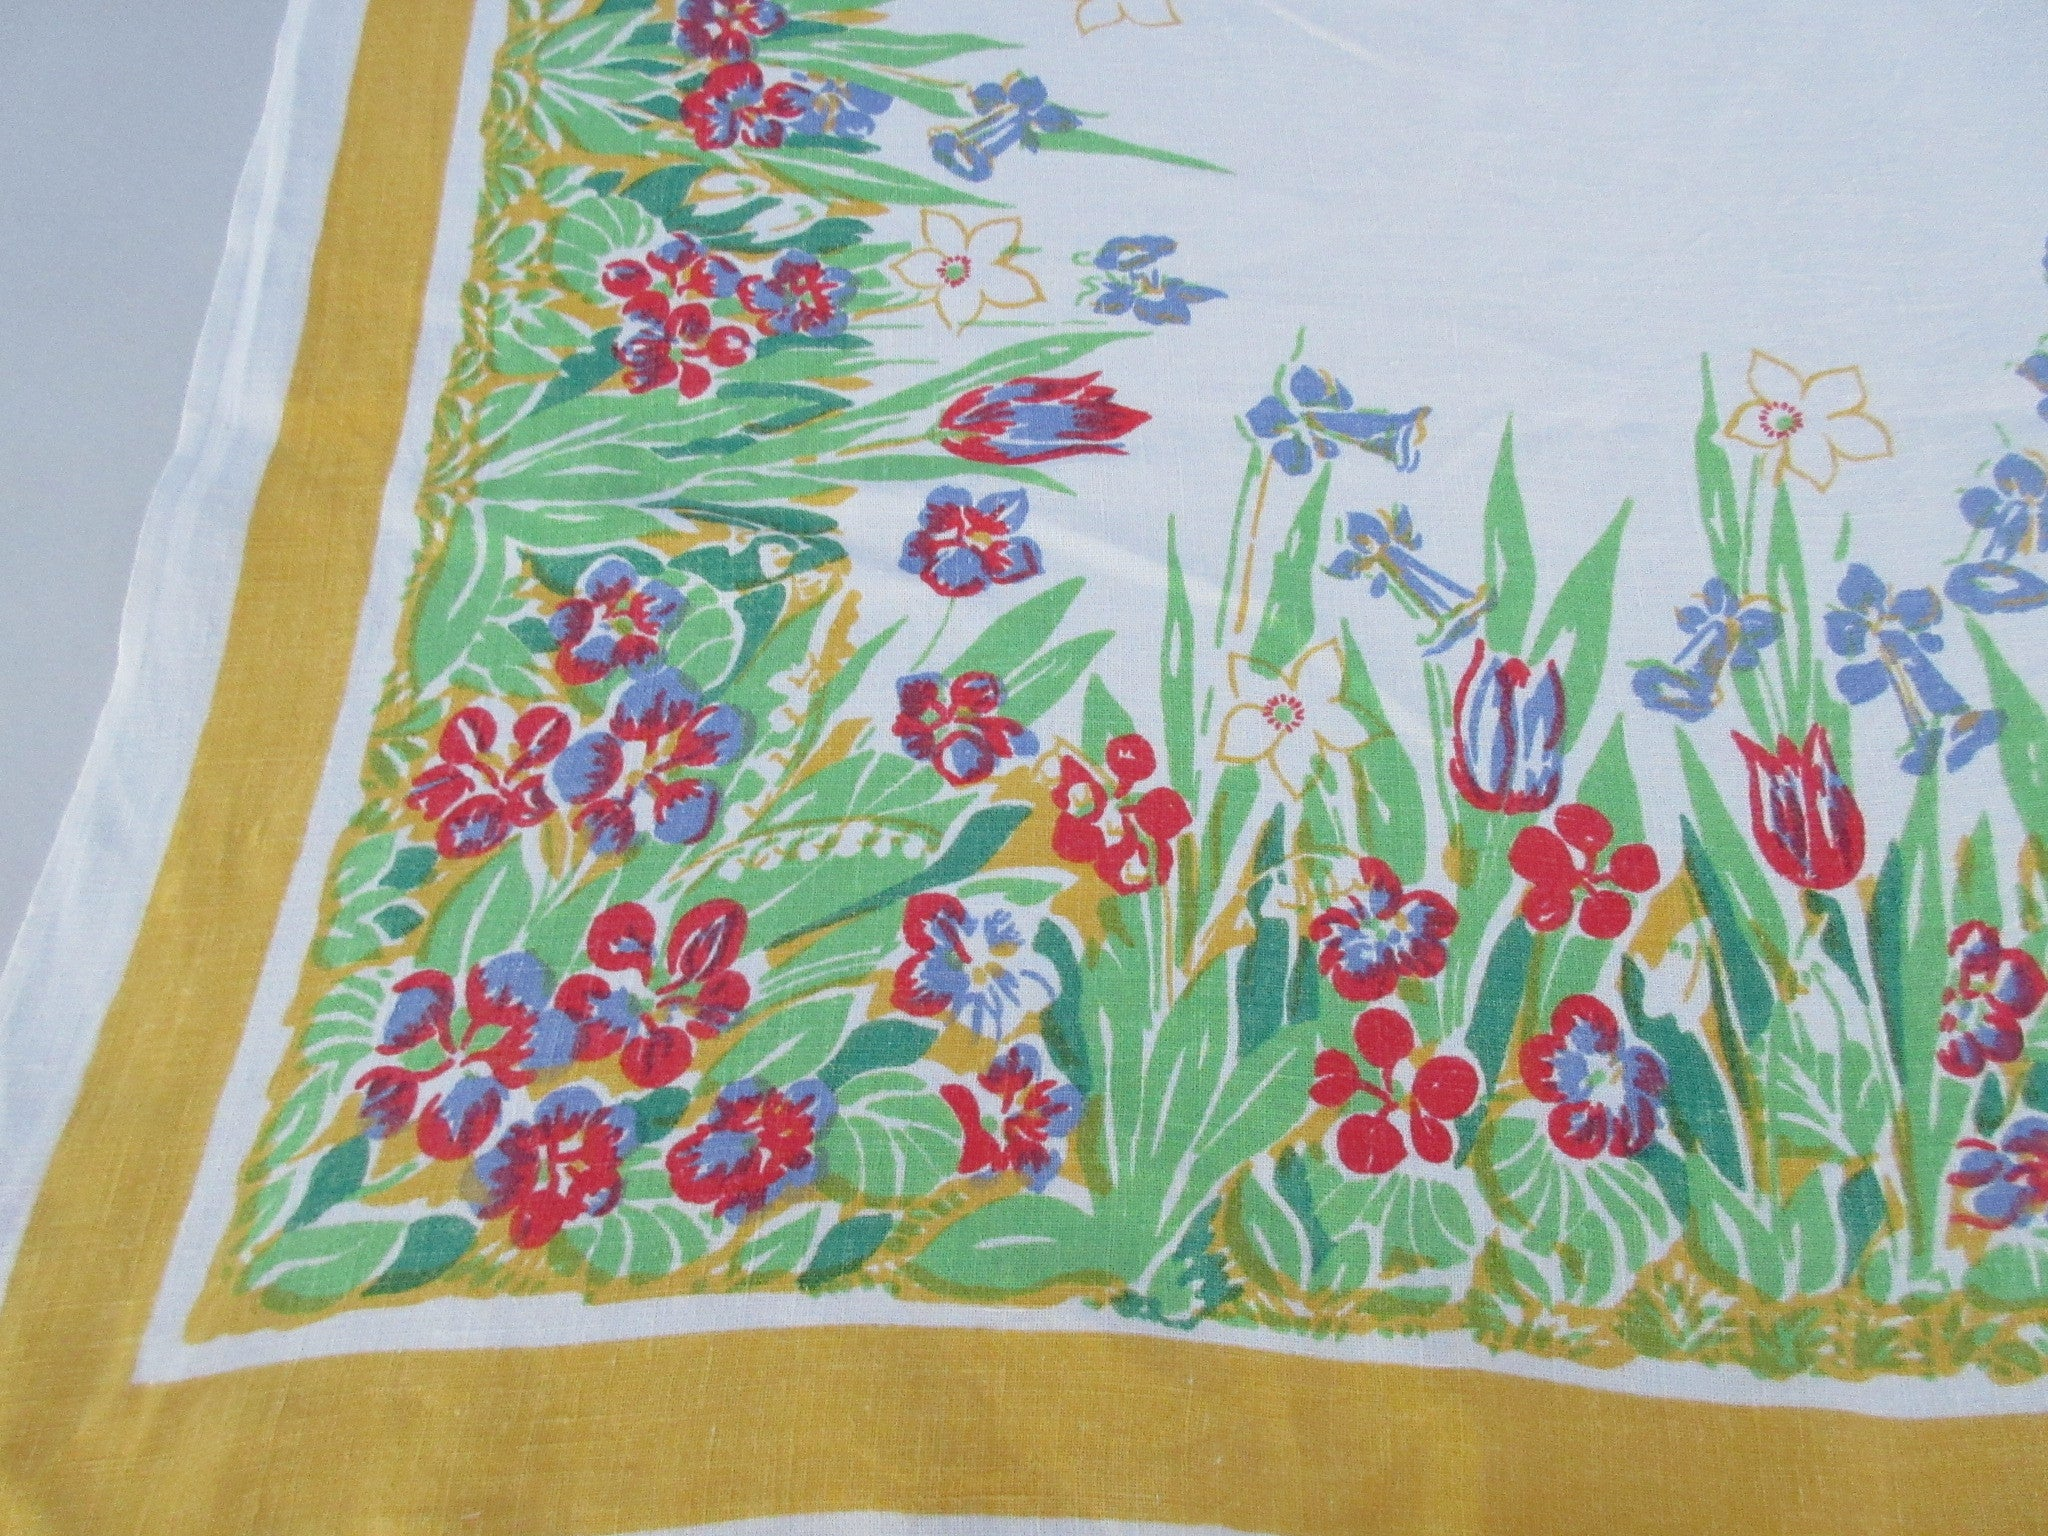 Primary Flowers on Yellow Pride of Flanders Linen Floral Vintage Printed Tablecloth (69 X 52)